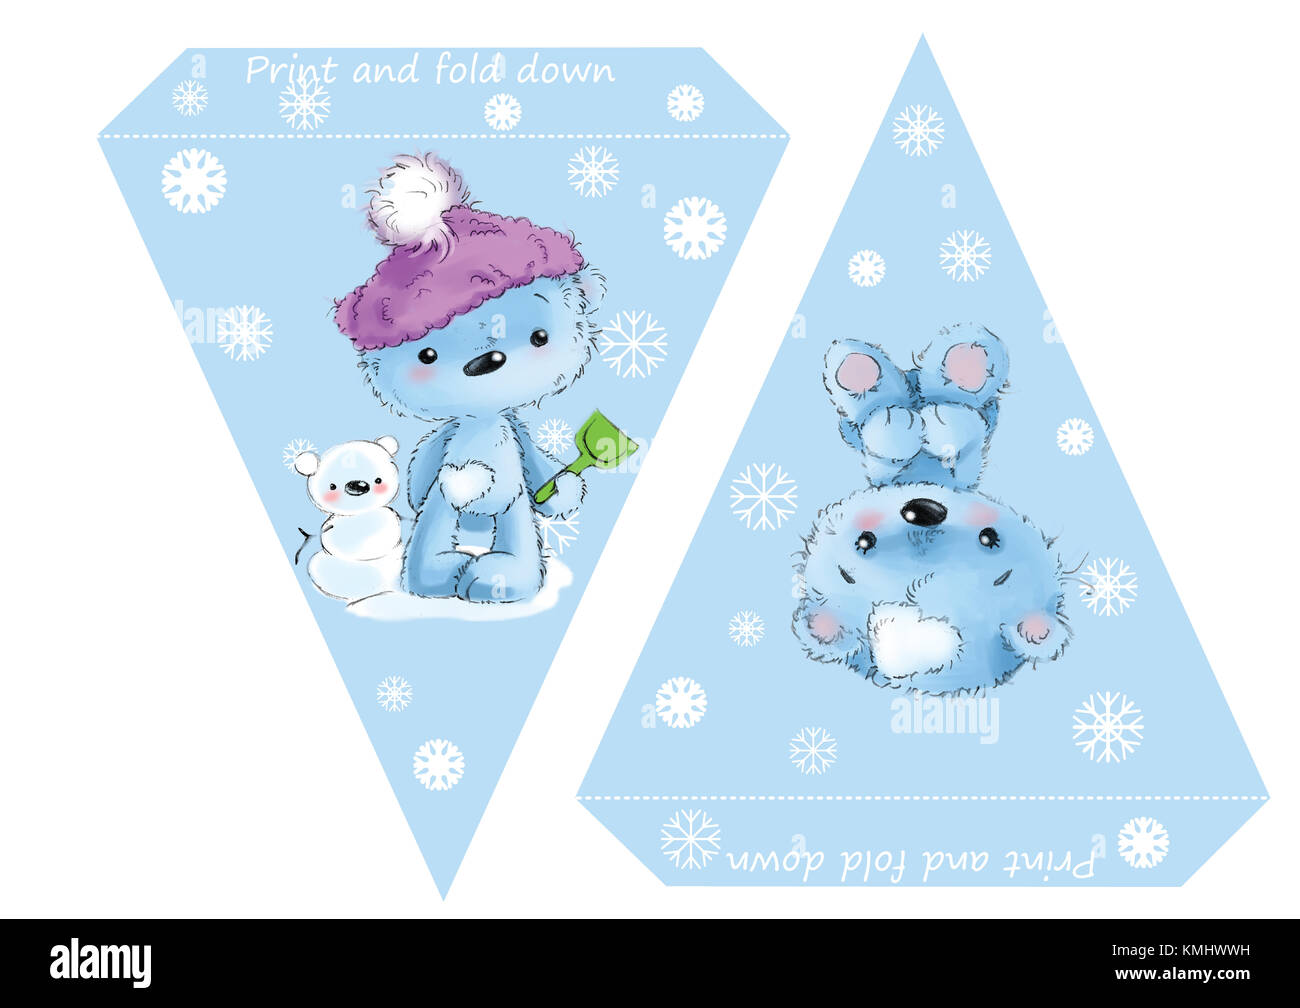 printable template flags banner baby shower birthday new year or christmas party with baby bears and snowflakes